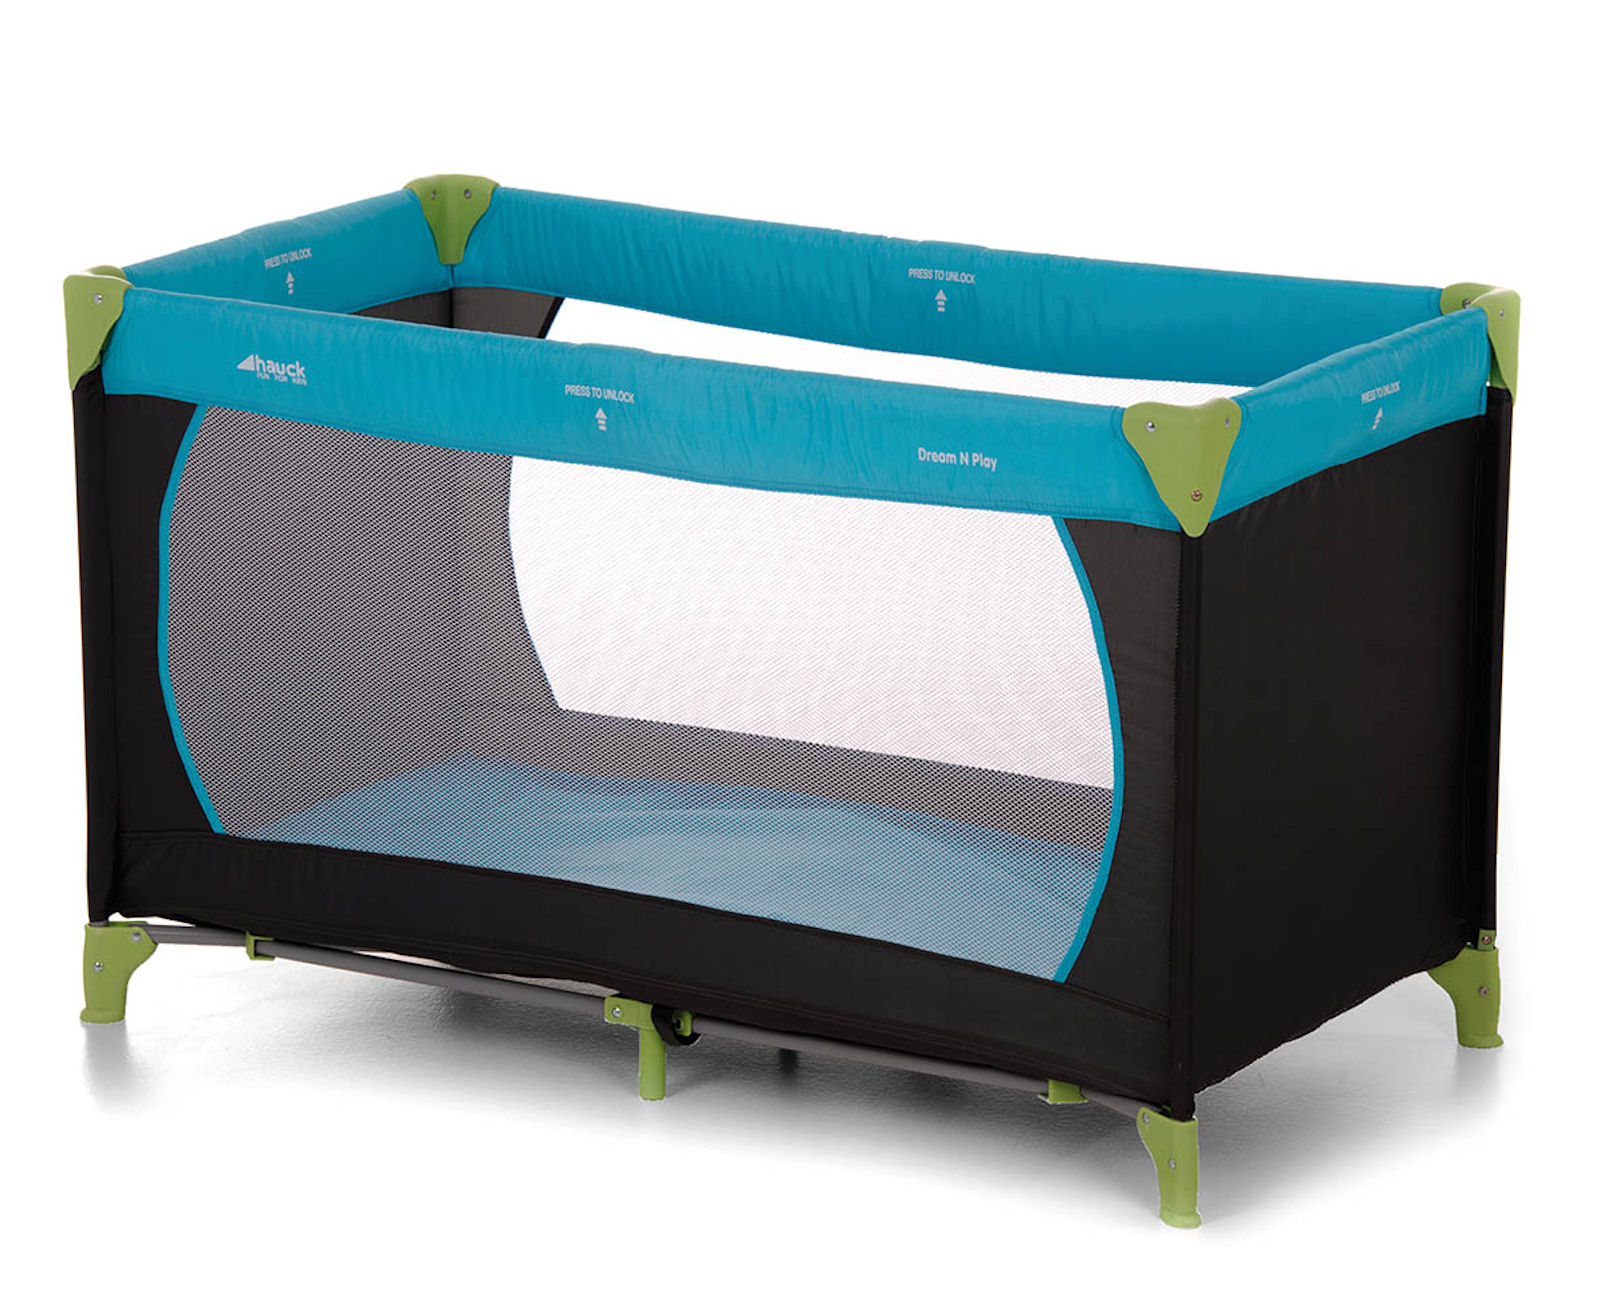 Hauck Deluxe Dream n Play Travel Cot Playpen Water Blue